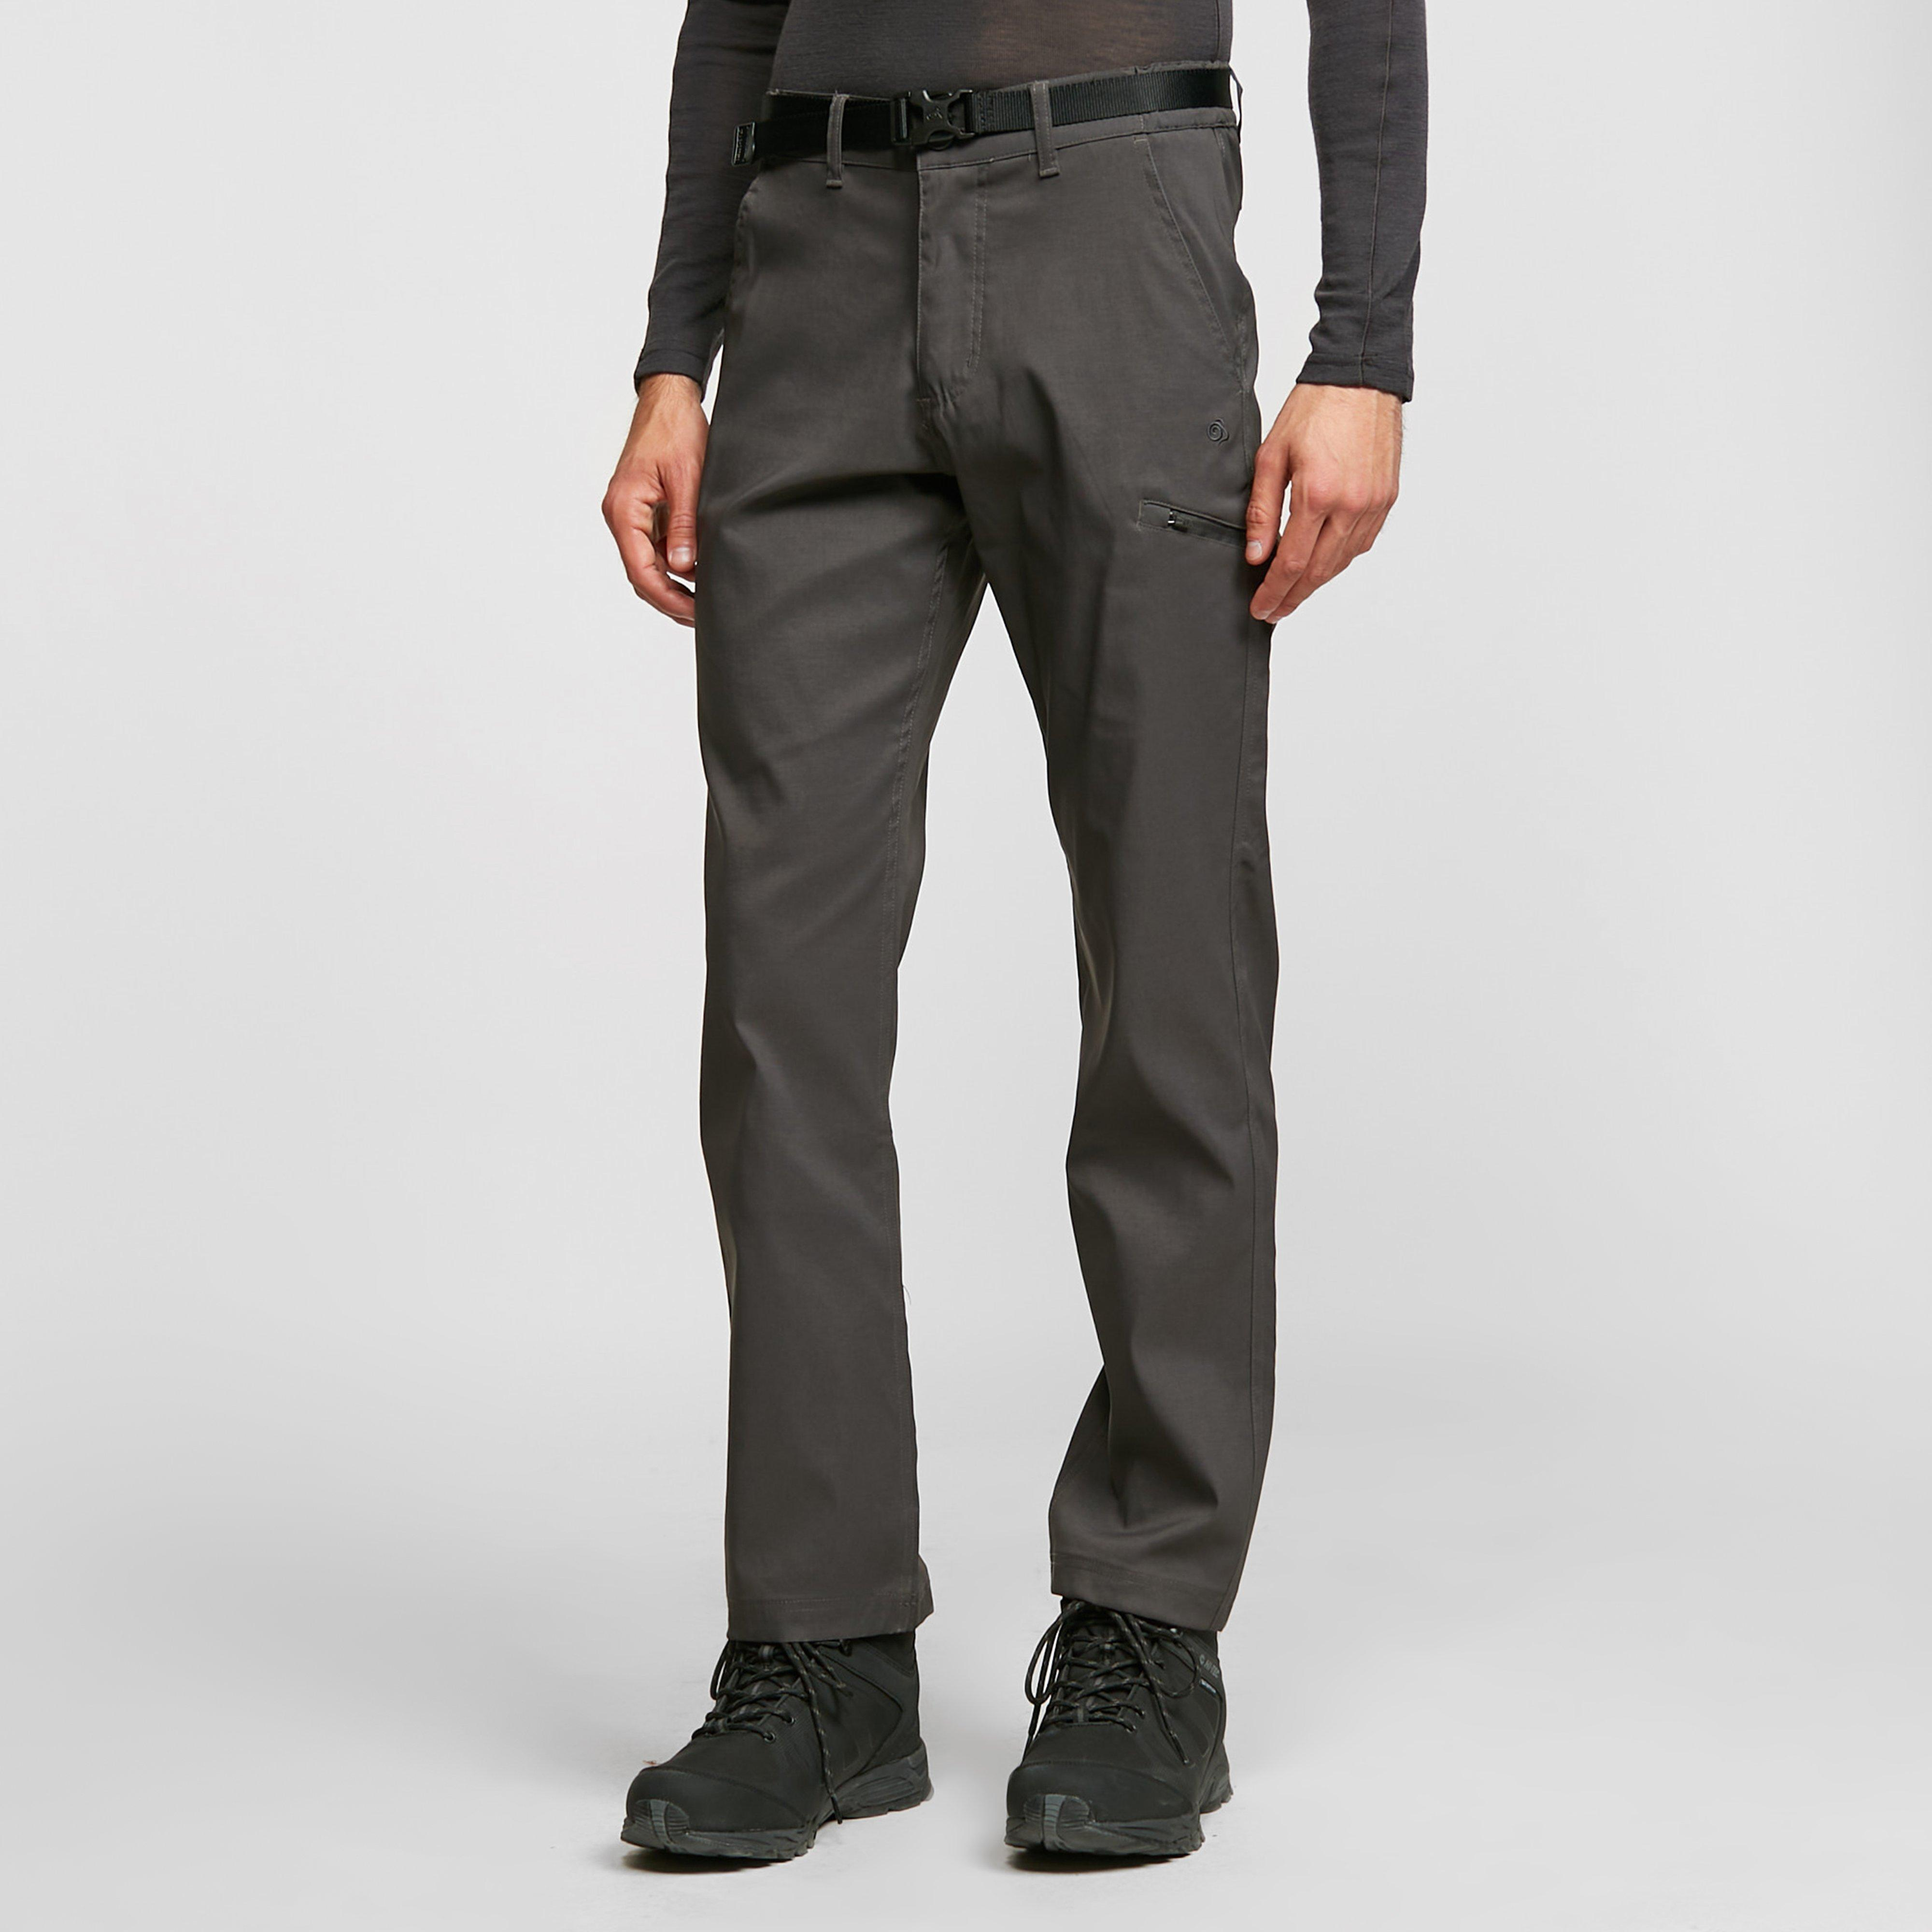 Craghoppers Craghoppers Mens Kiwi Pro Stretch Trousers, Grey